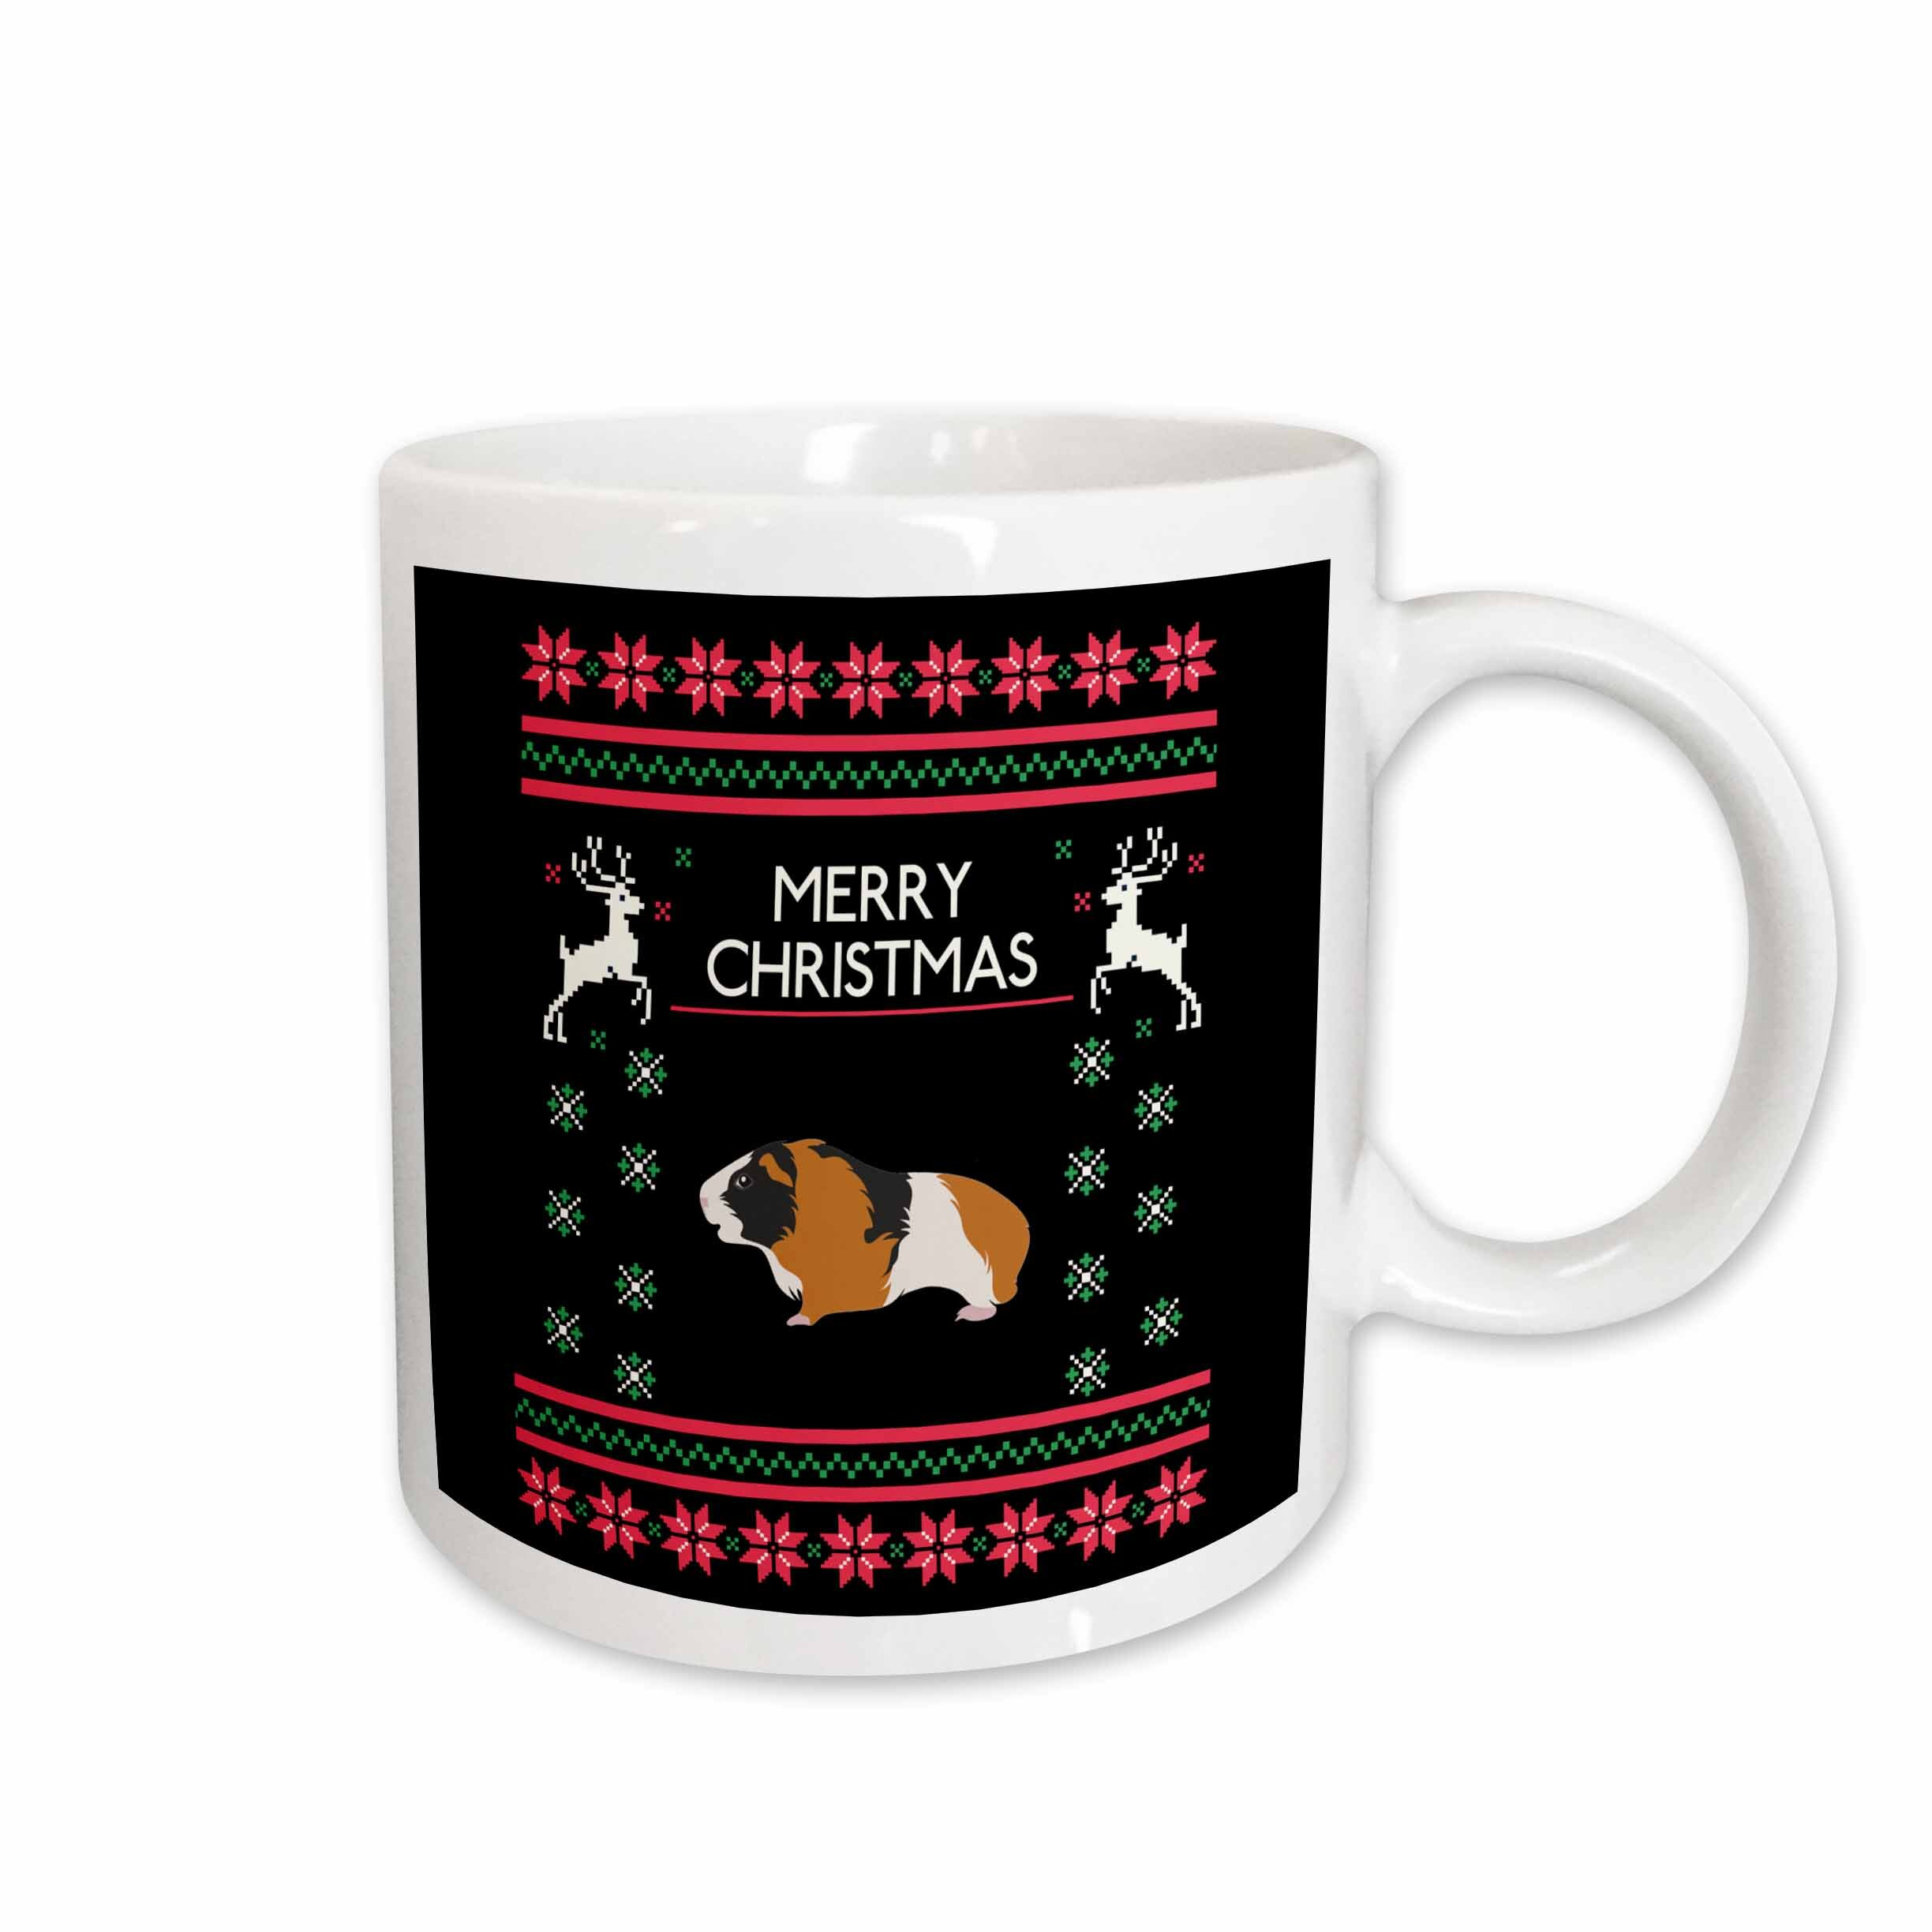 Ceramic Rustic Christmas Mugs Cups You Ll Love In 2021 Wayfair